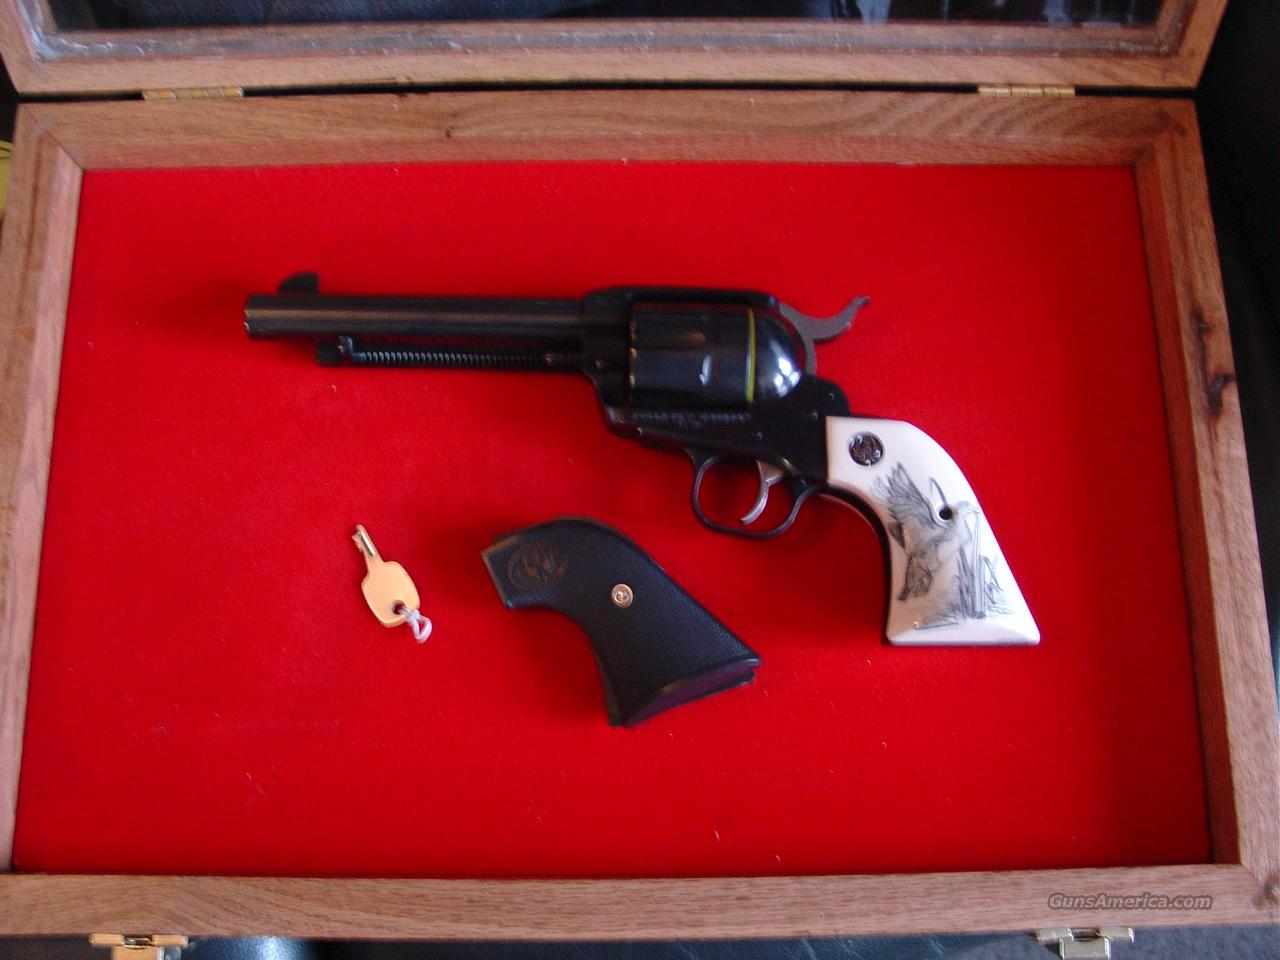 "Ruger New Vaquero,Ducks Unlimited 75th Anniversary,limited edition,45LC,5 1/2"",scrimshaw custom grips & regular grips,large engraved wood & glass pres case,original box & all papers,gold writing,never fired-awesome revolver.  Guns > Pistols > Ruger Single Action Revolvers > Cowboy Action"